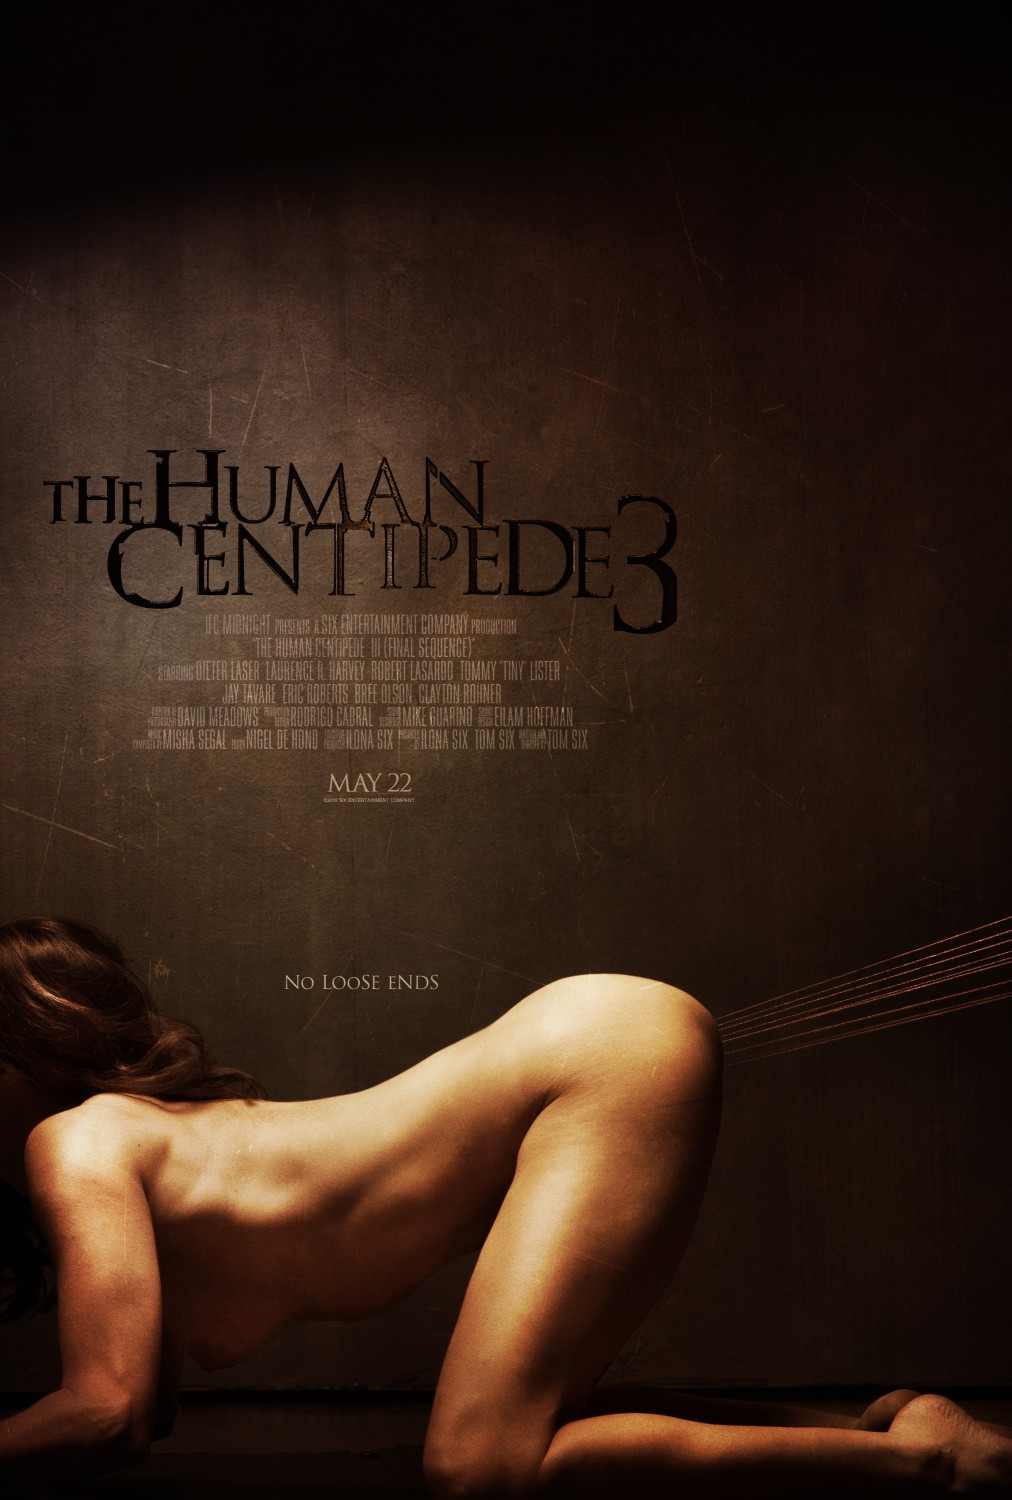 human centipede 3 poster 5 - NSFW - The Human Centipede 3: Final Sequence Gets 4 New Incredible Posters